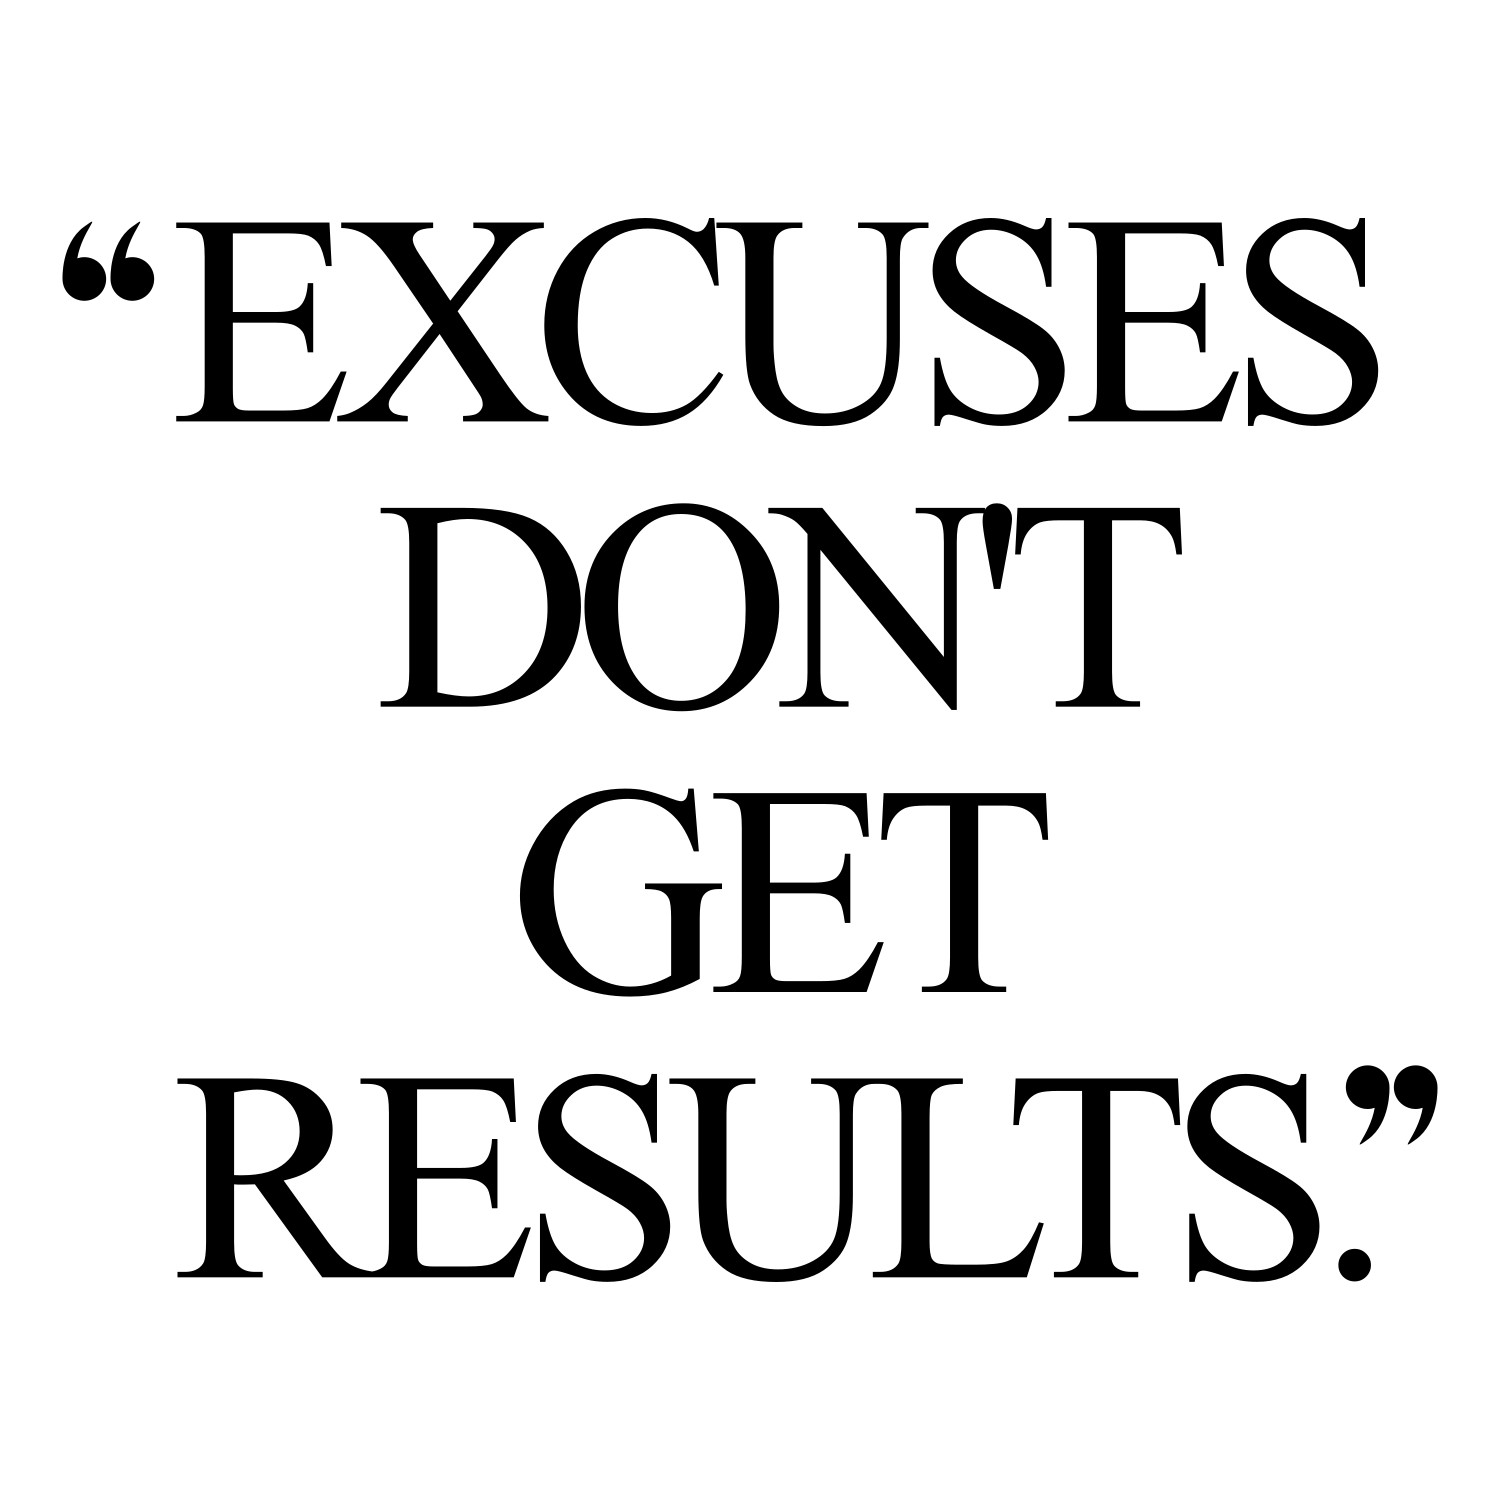 Merveilleux Excuses Donu0027t Get Results! Browse Our Collection Of Motivational Exercise  And Weight Loss